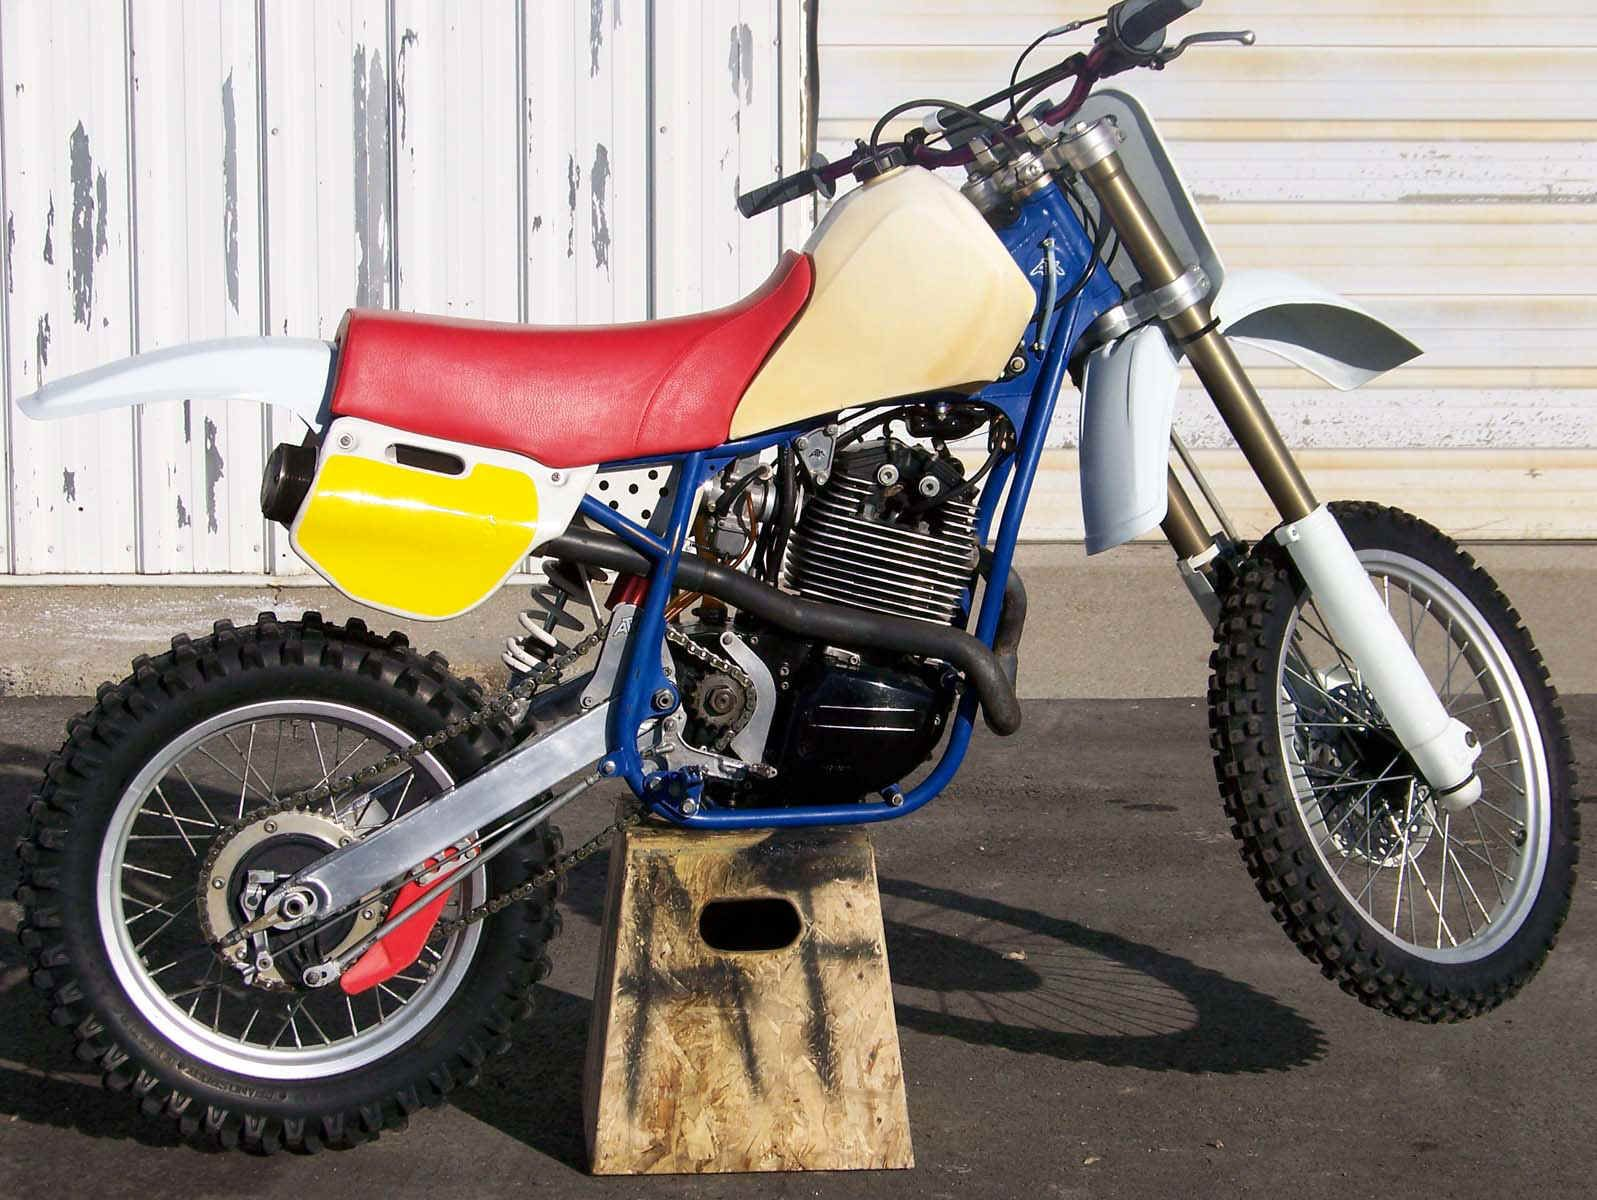 1985 ATK 560  ATK was an American motorcycle that wasn't